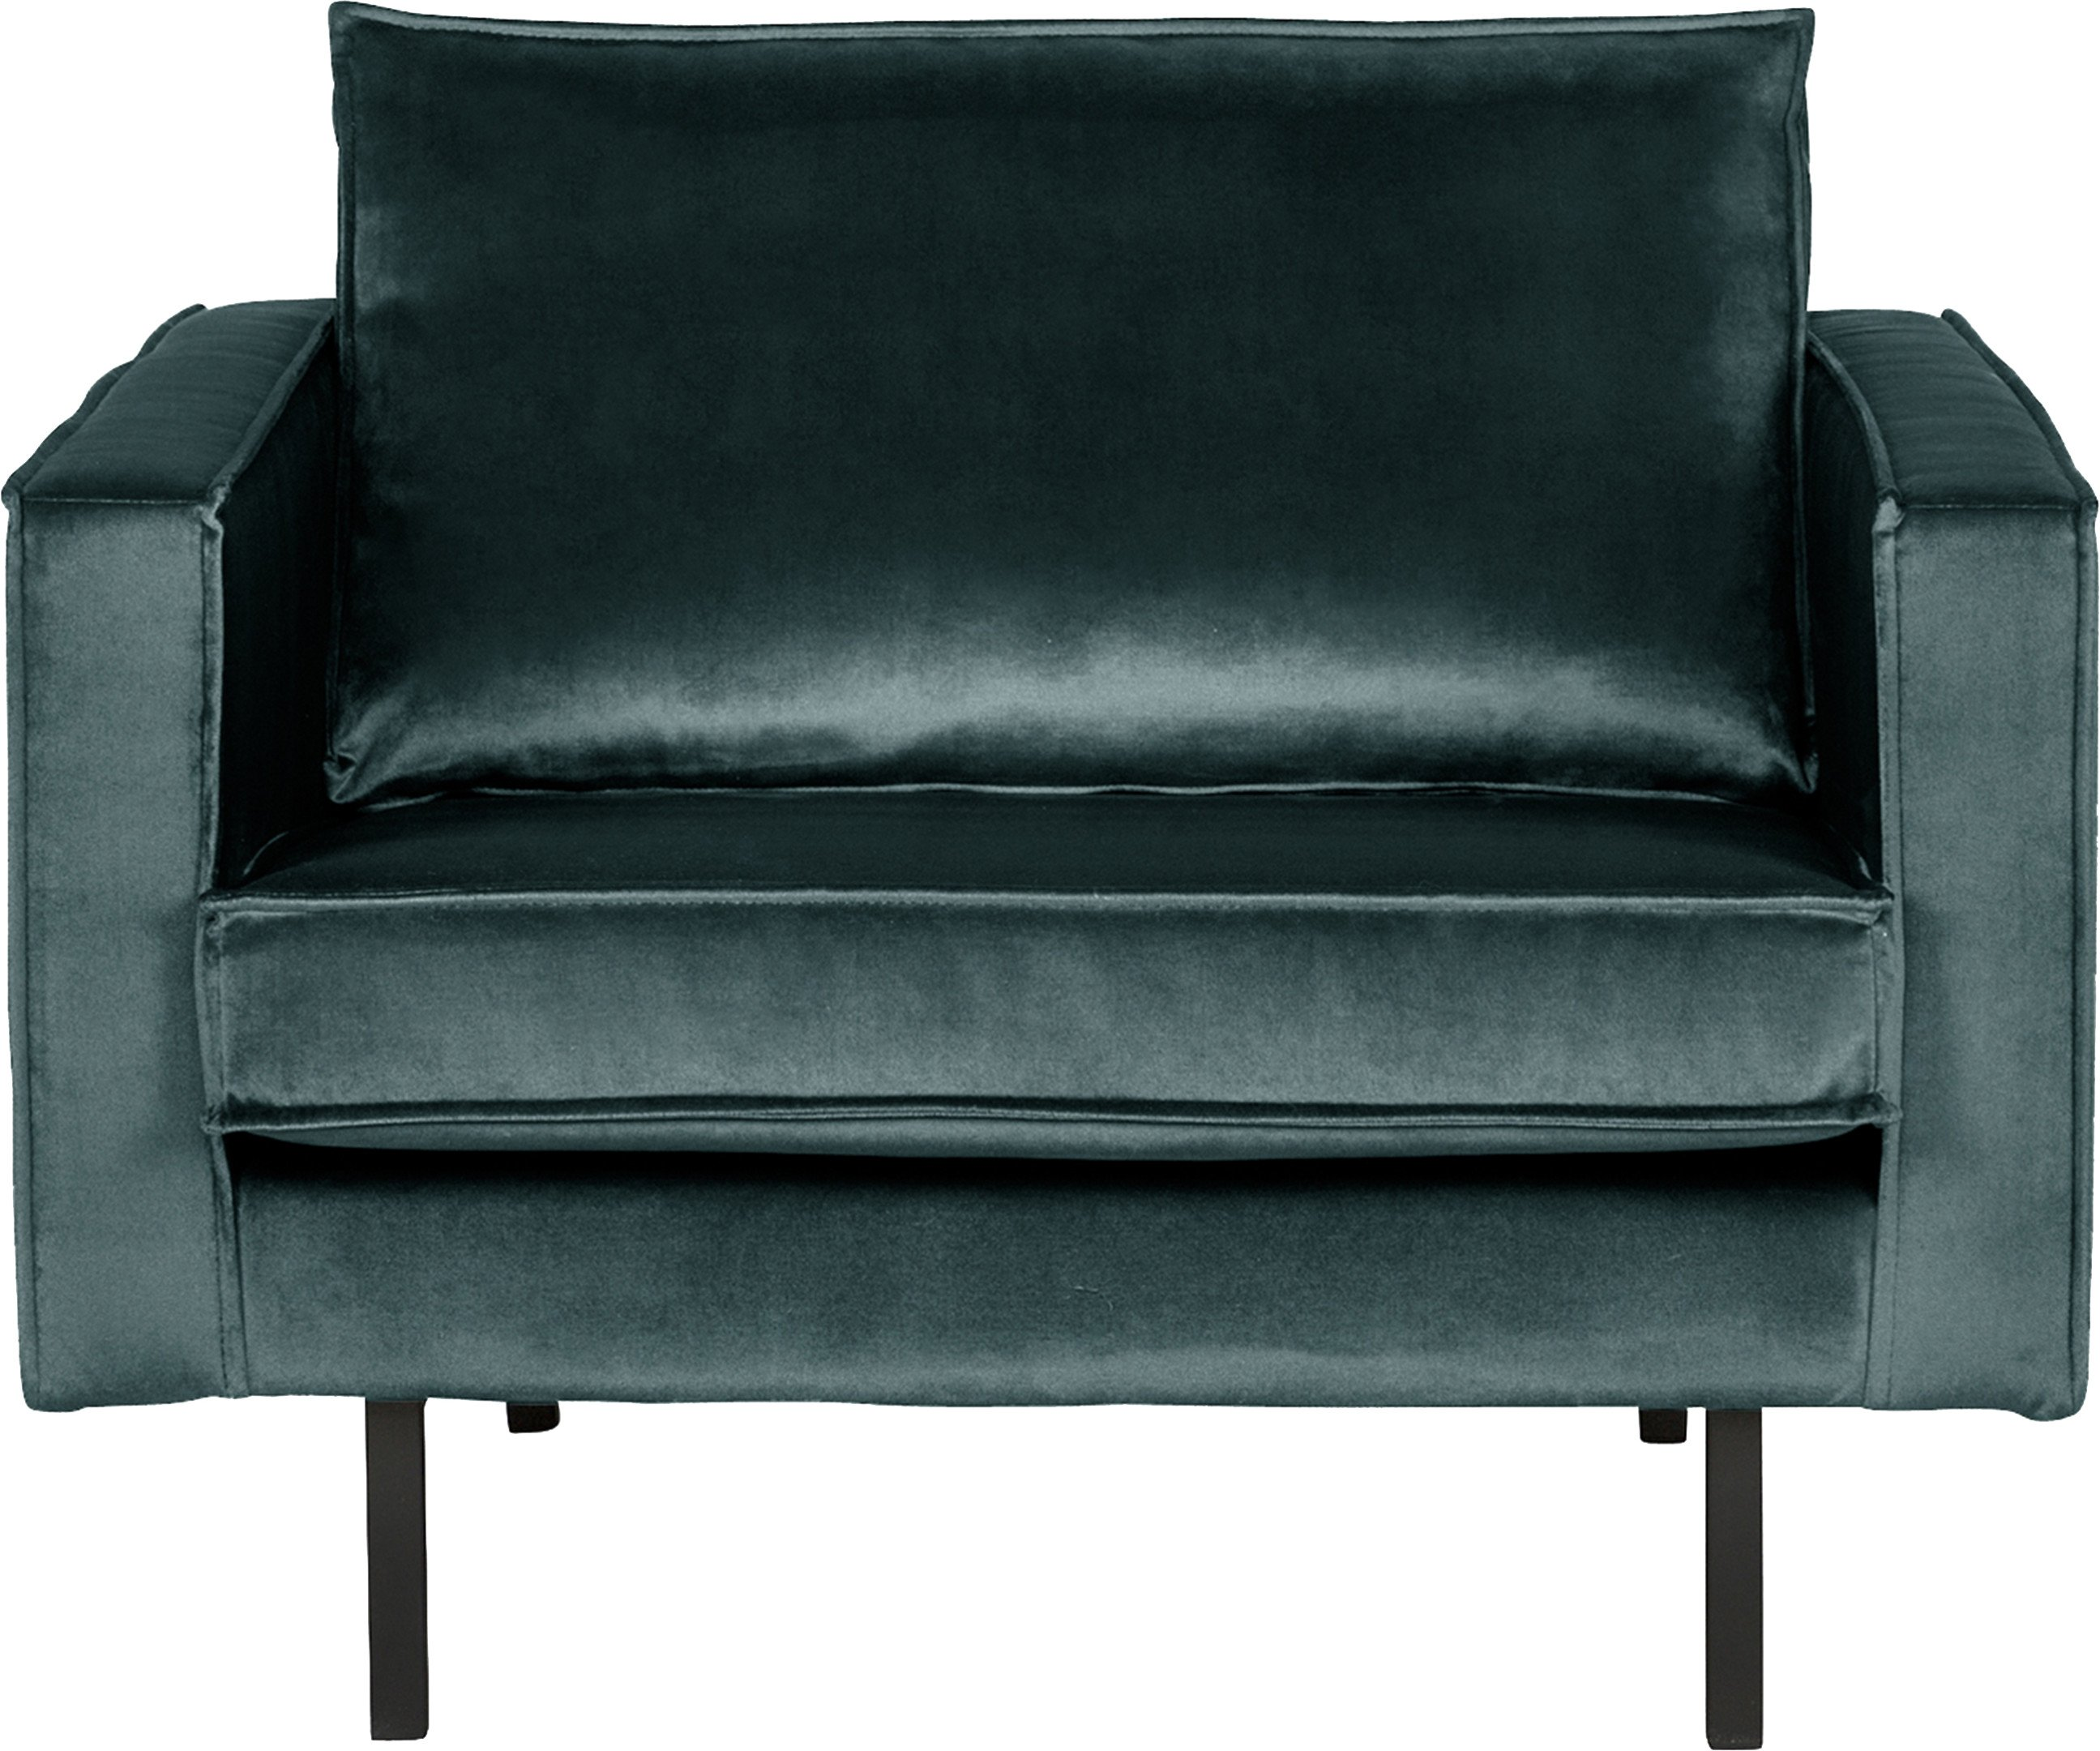 Rodeo Armchair Dark Turquoise, Be Pure